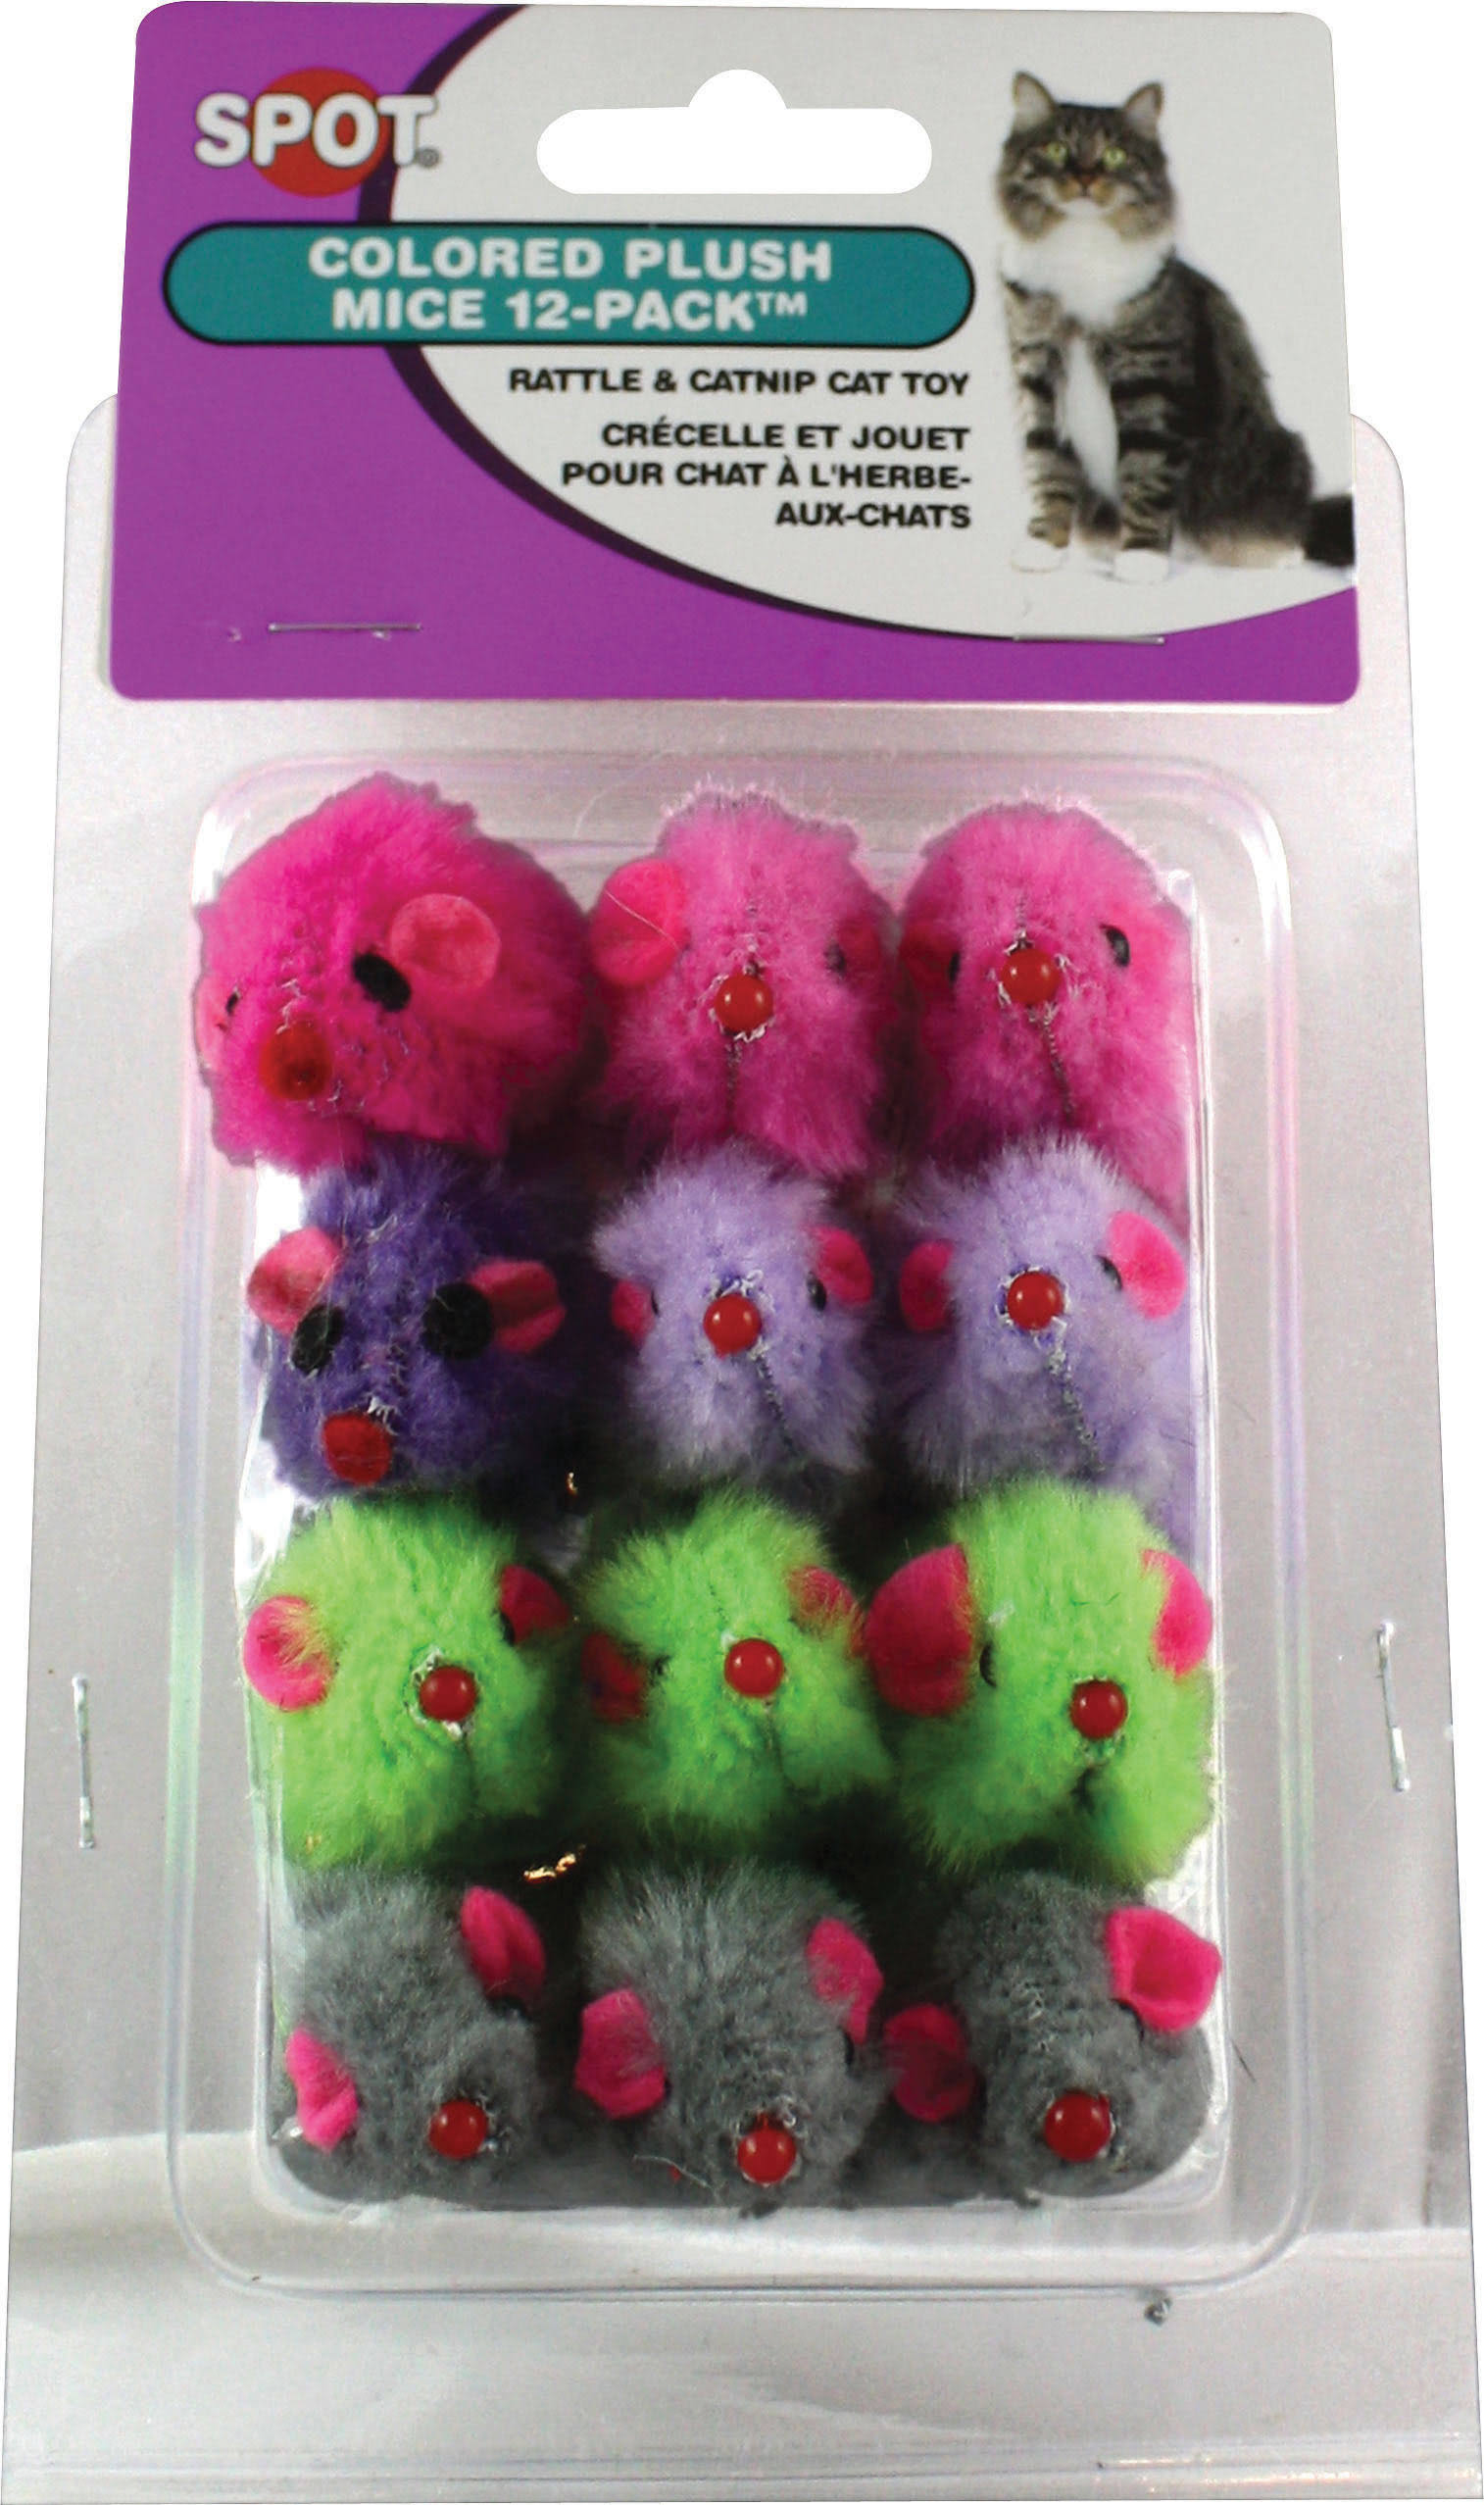 Ethical Colored Plush Mice With Catnip Cat Toy